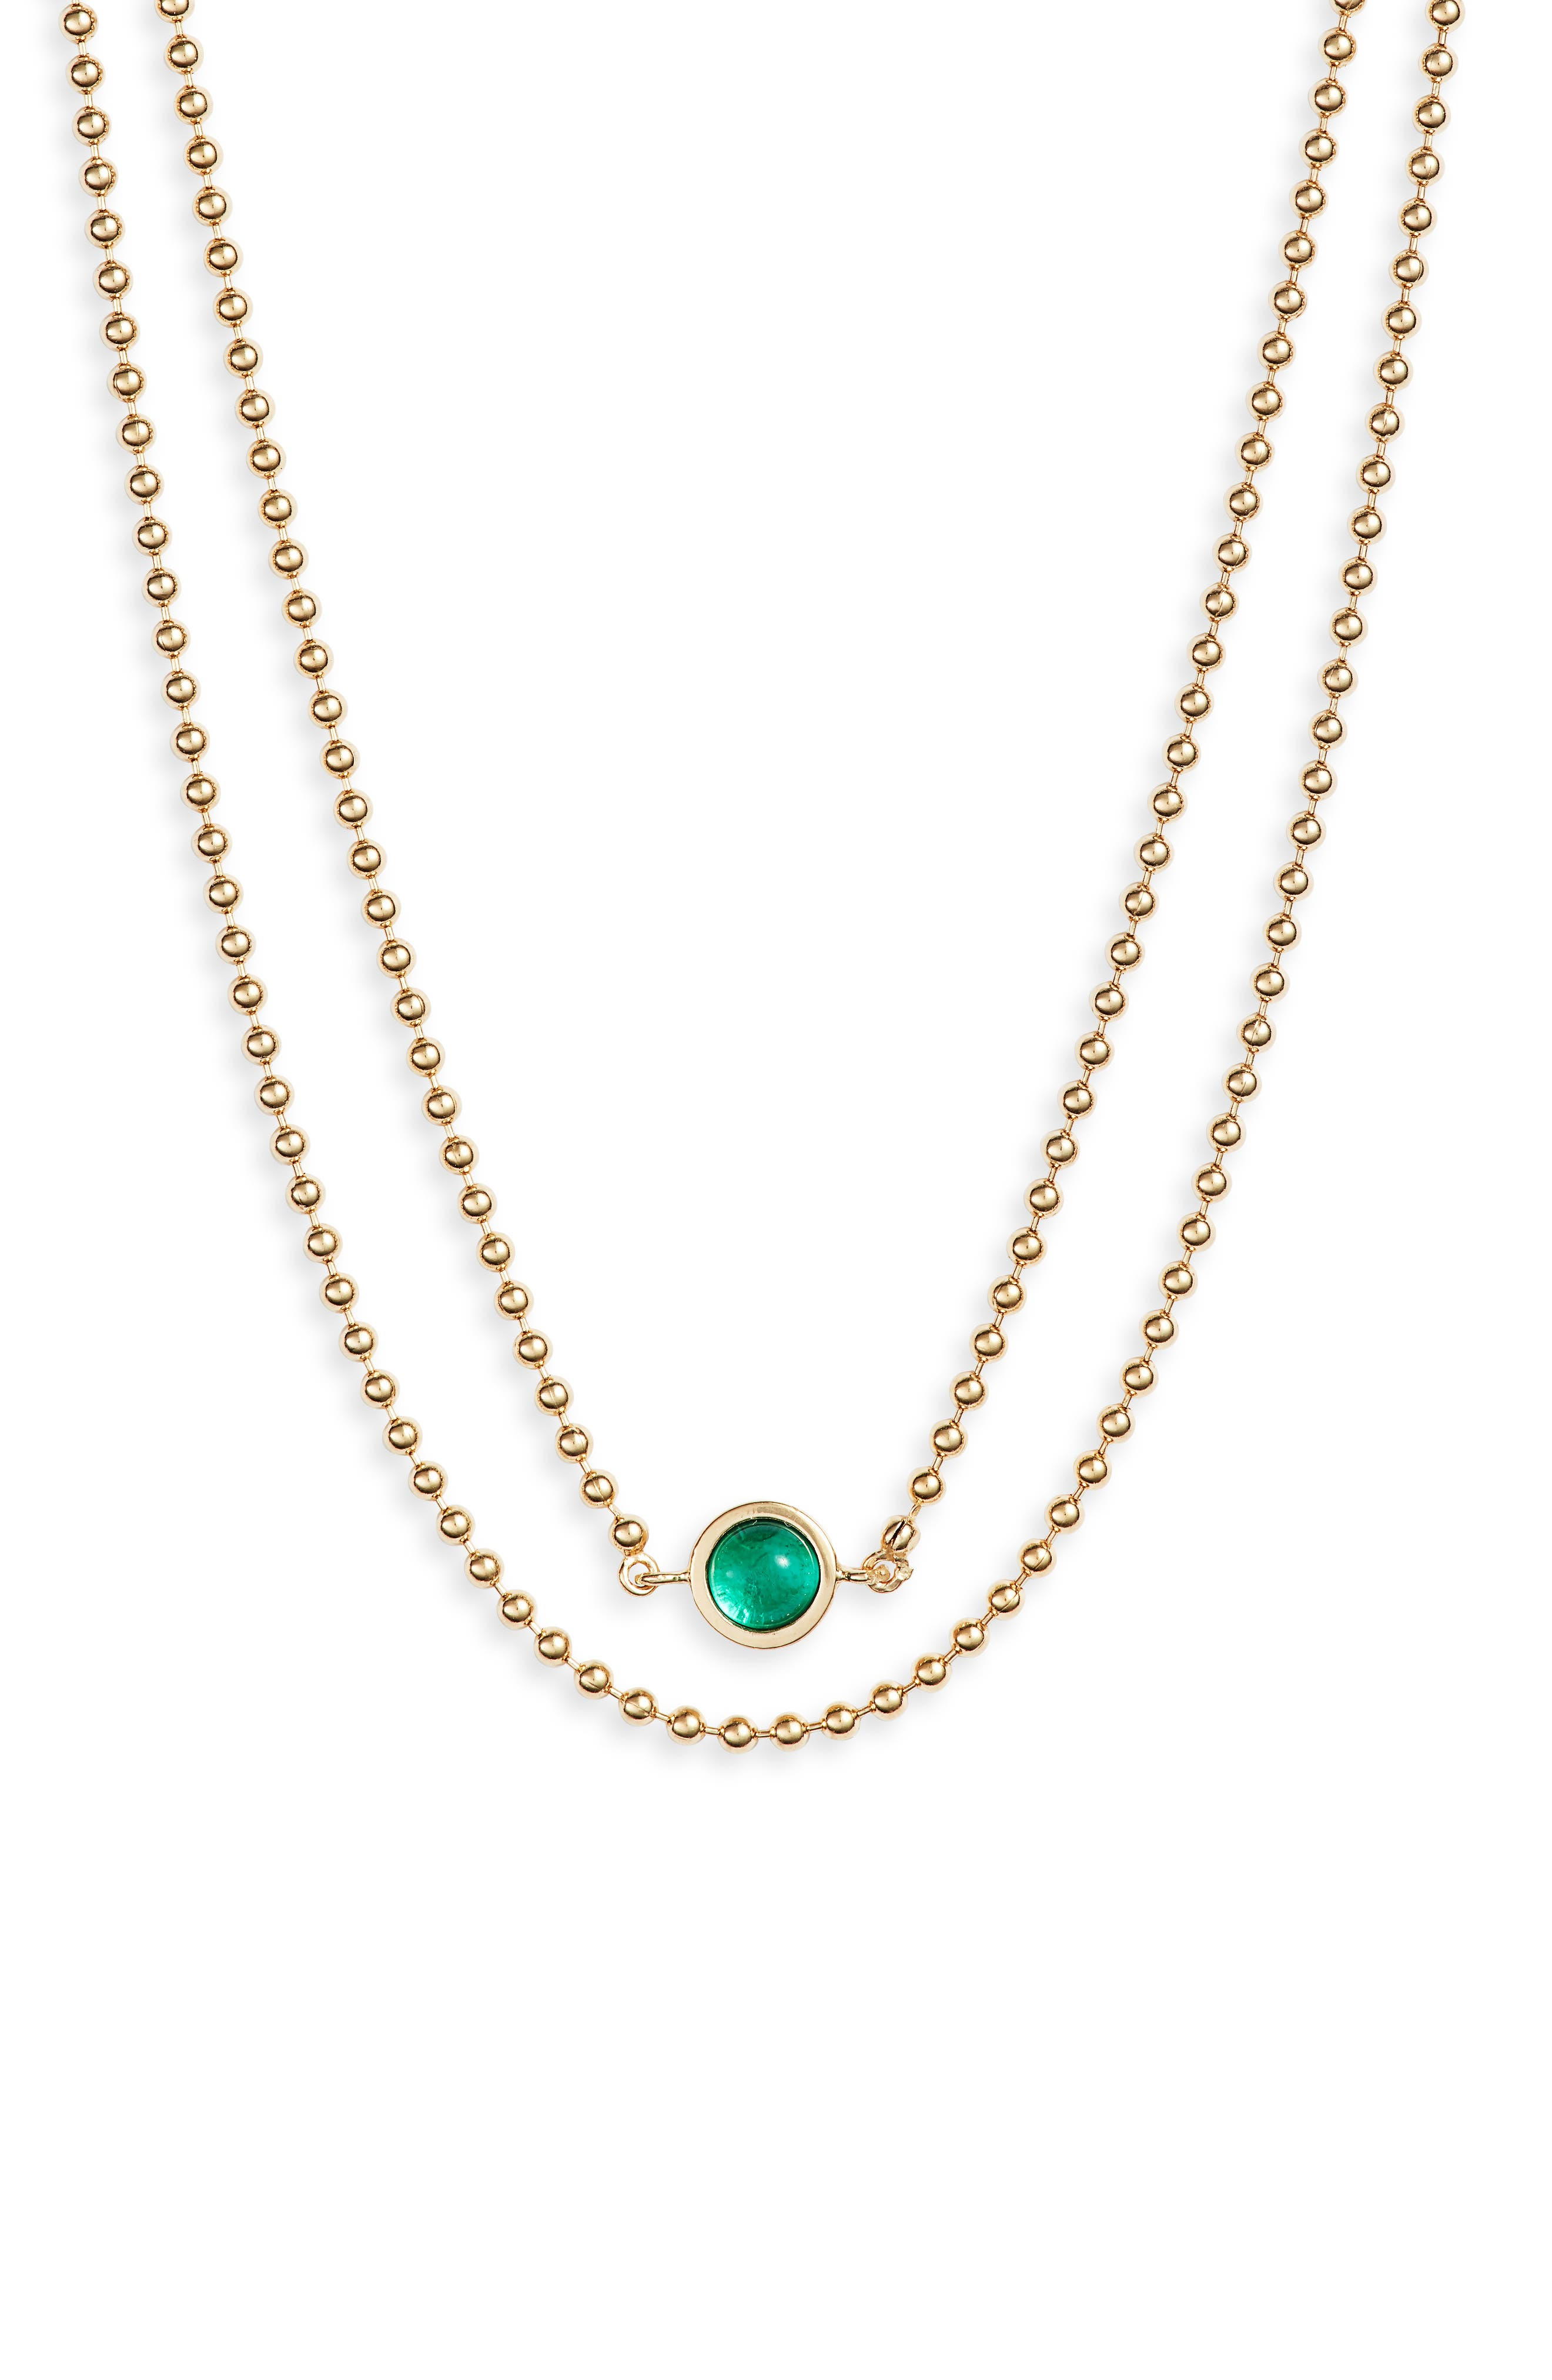 JENNIFER ZEUNER Eliza Double Strand Necklace in Yellow Gold Vermeil